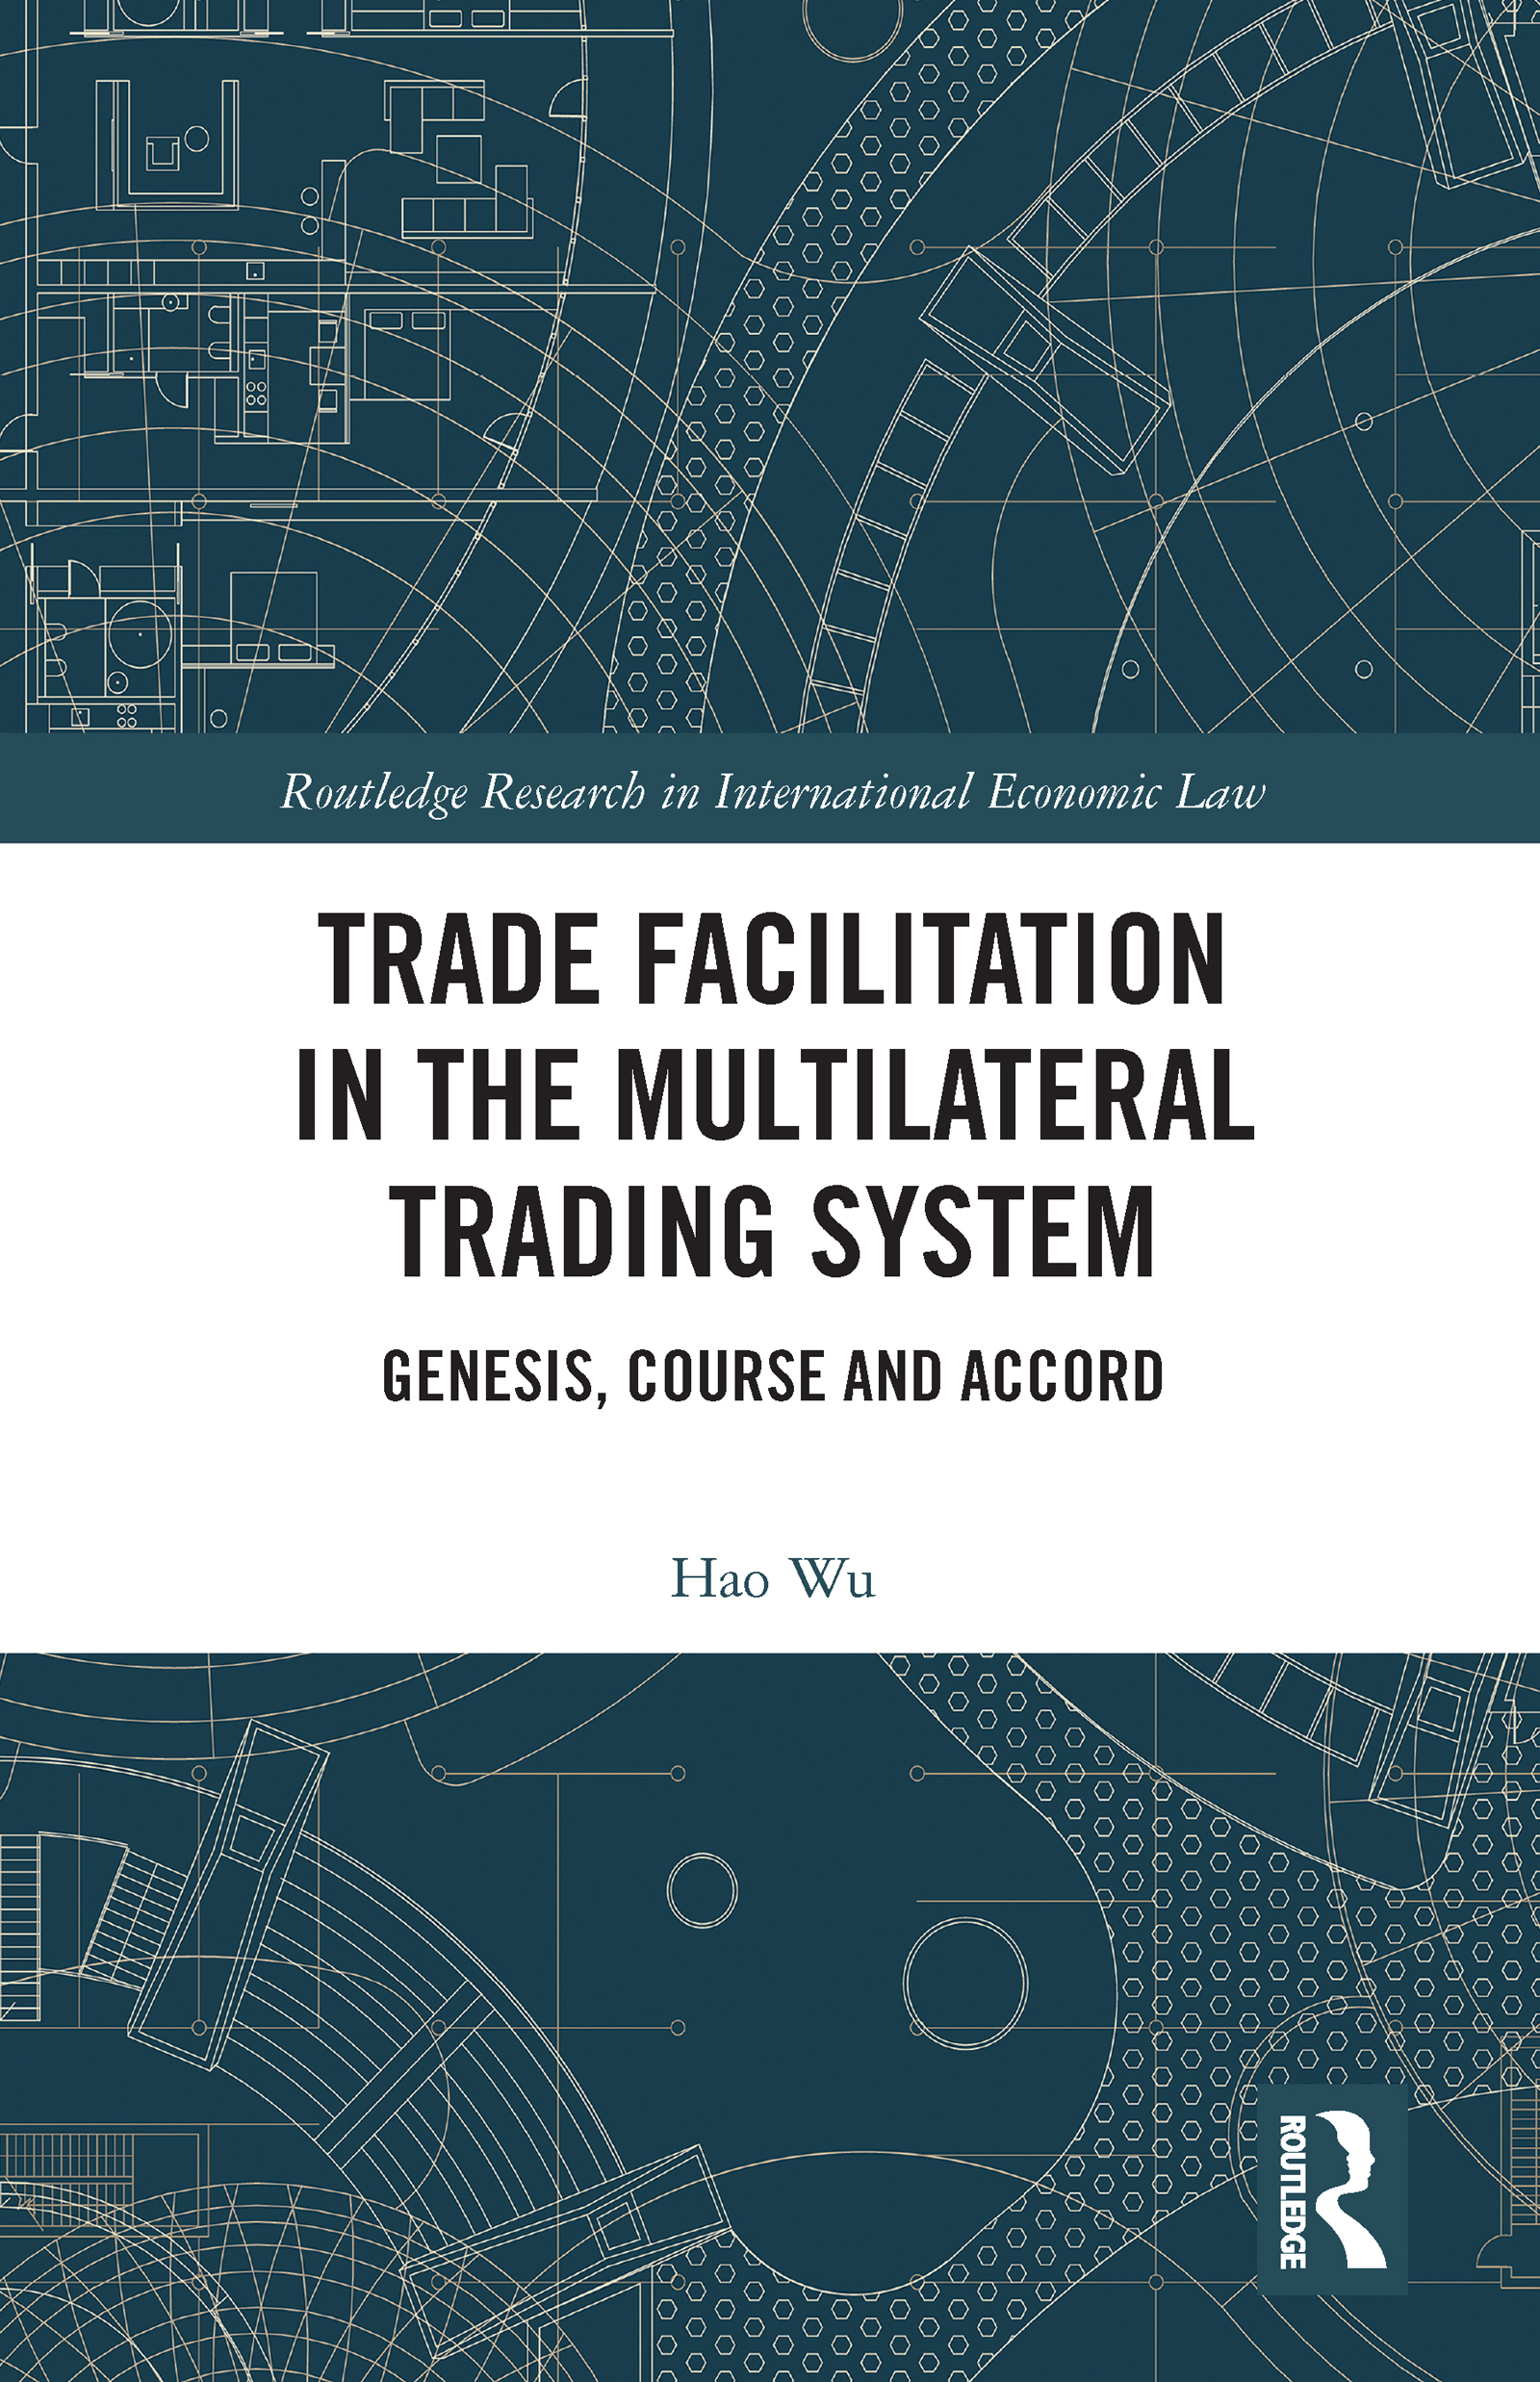 Trade Facilitation in the Multilateral Trading System